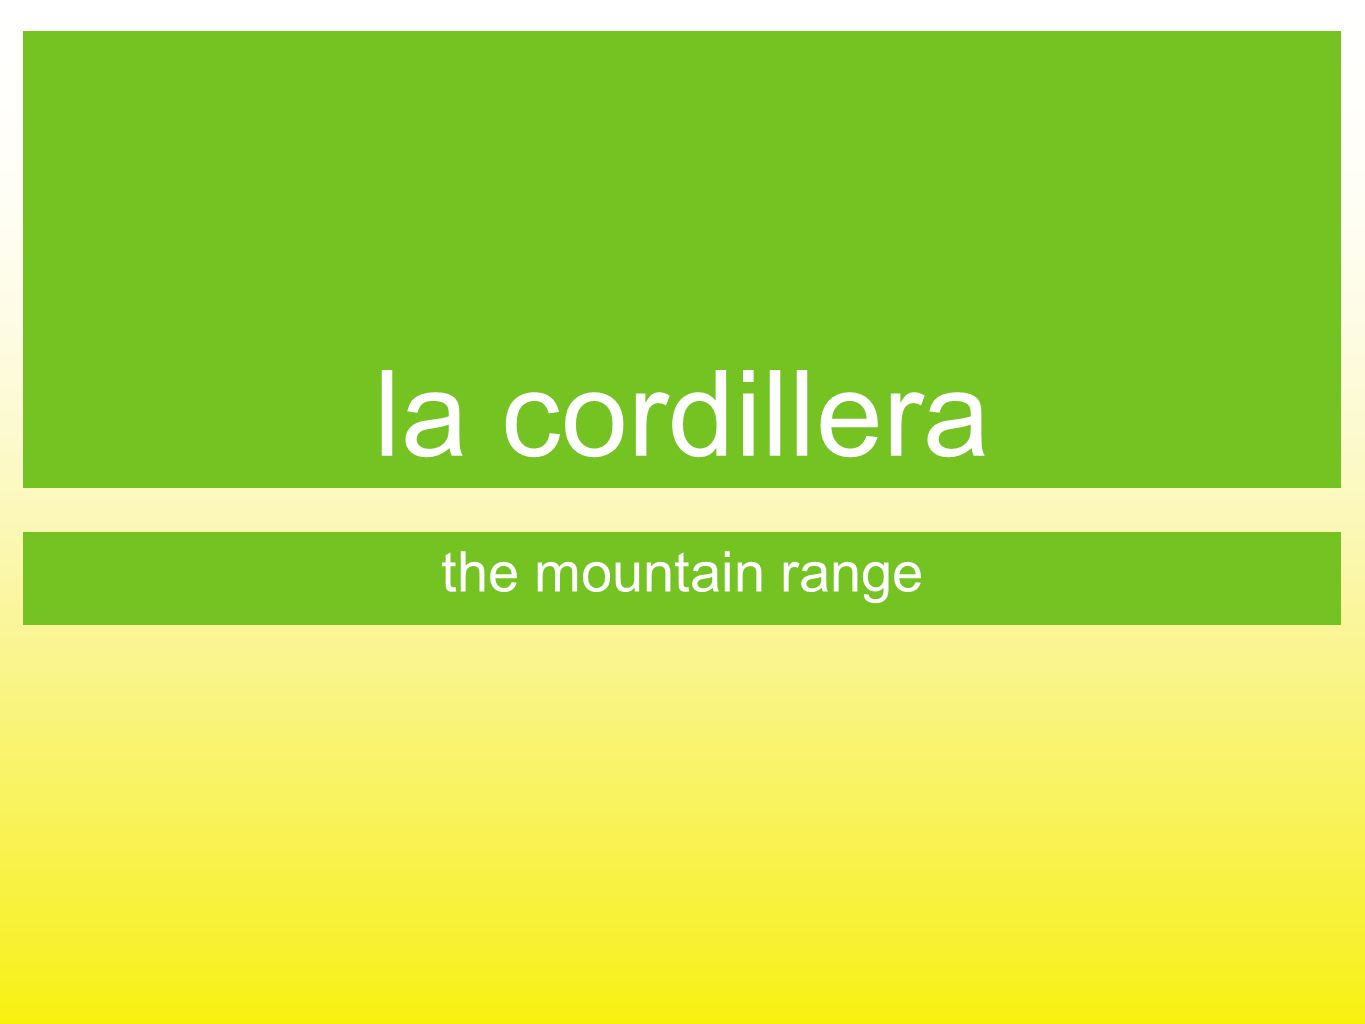 la cordillera the mountain range